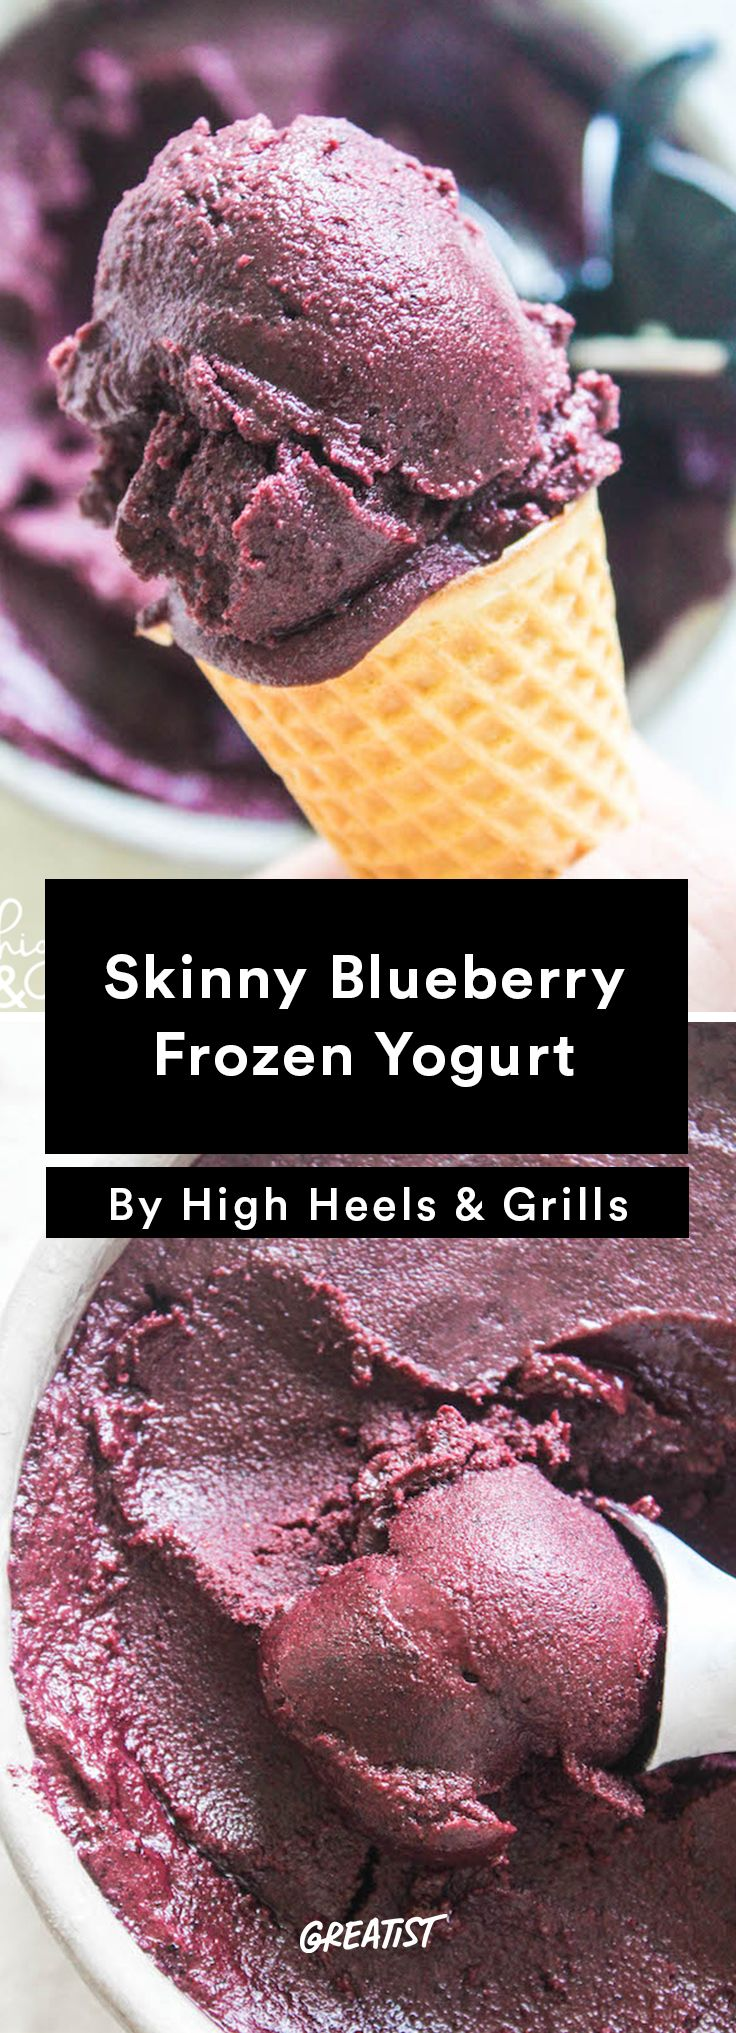 1. Skinny Blueberry Frozen Yogurt http://greatist.com/eat/frozen-yogurt-recipes-with-5-ingredients-or-less